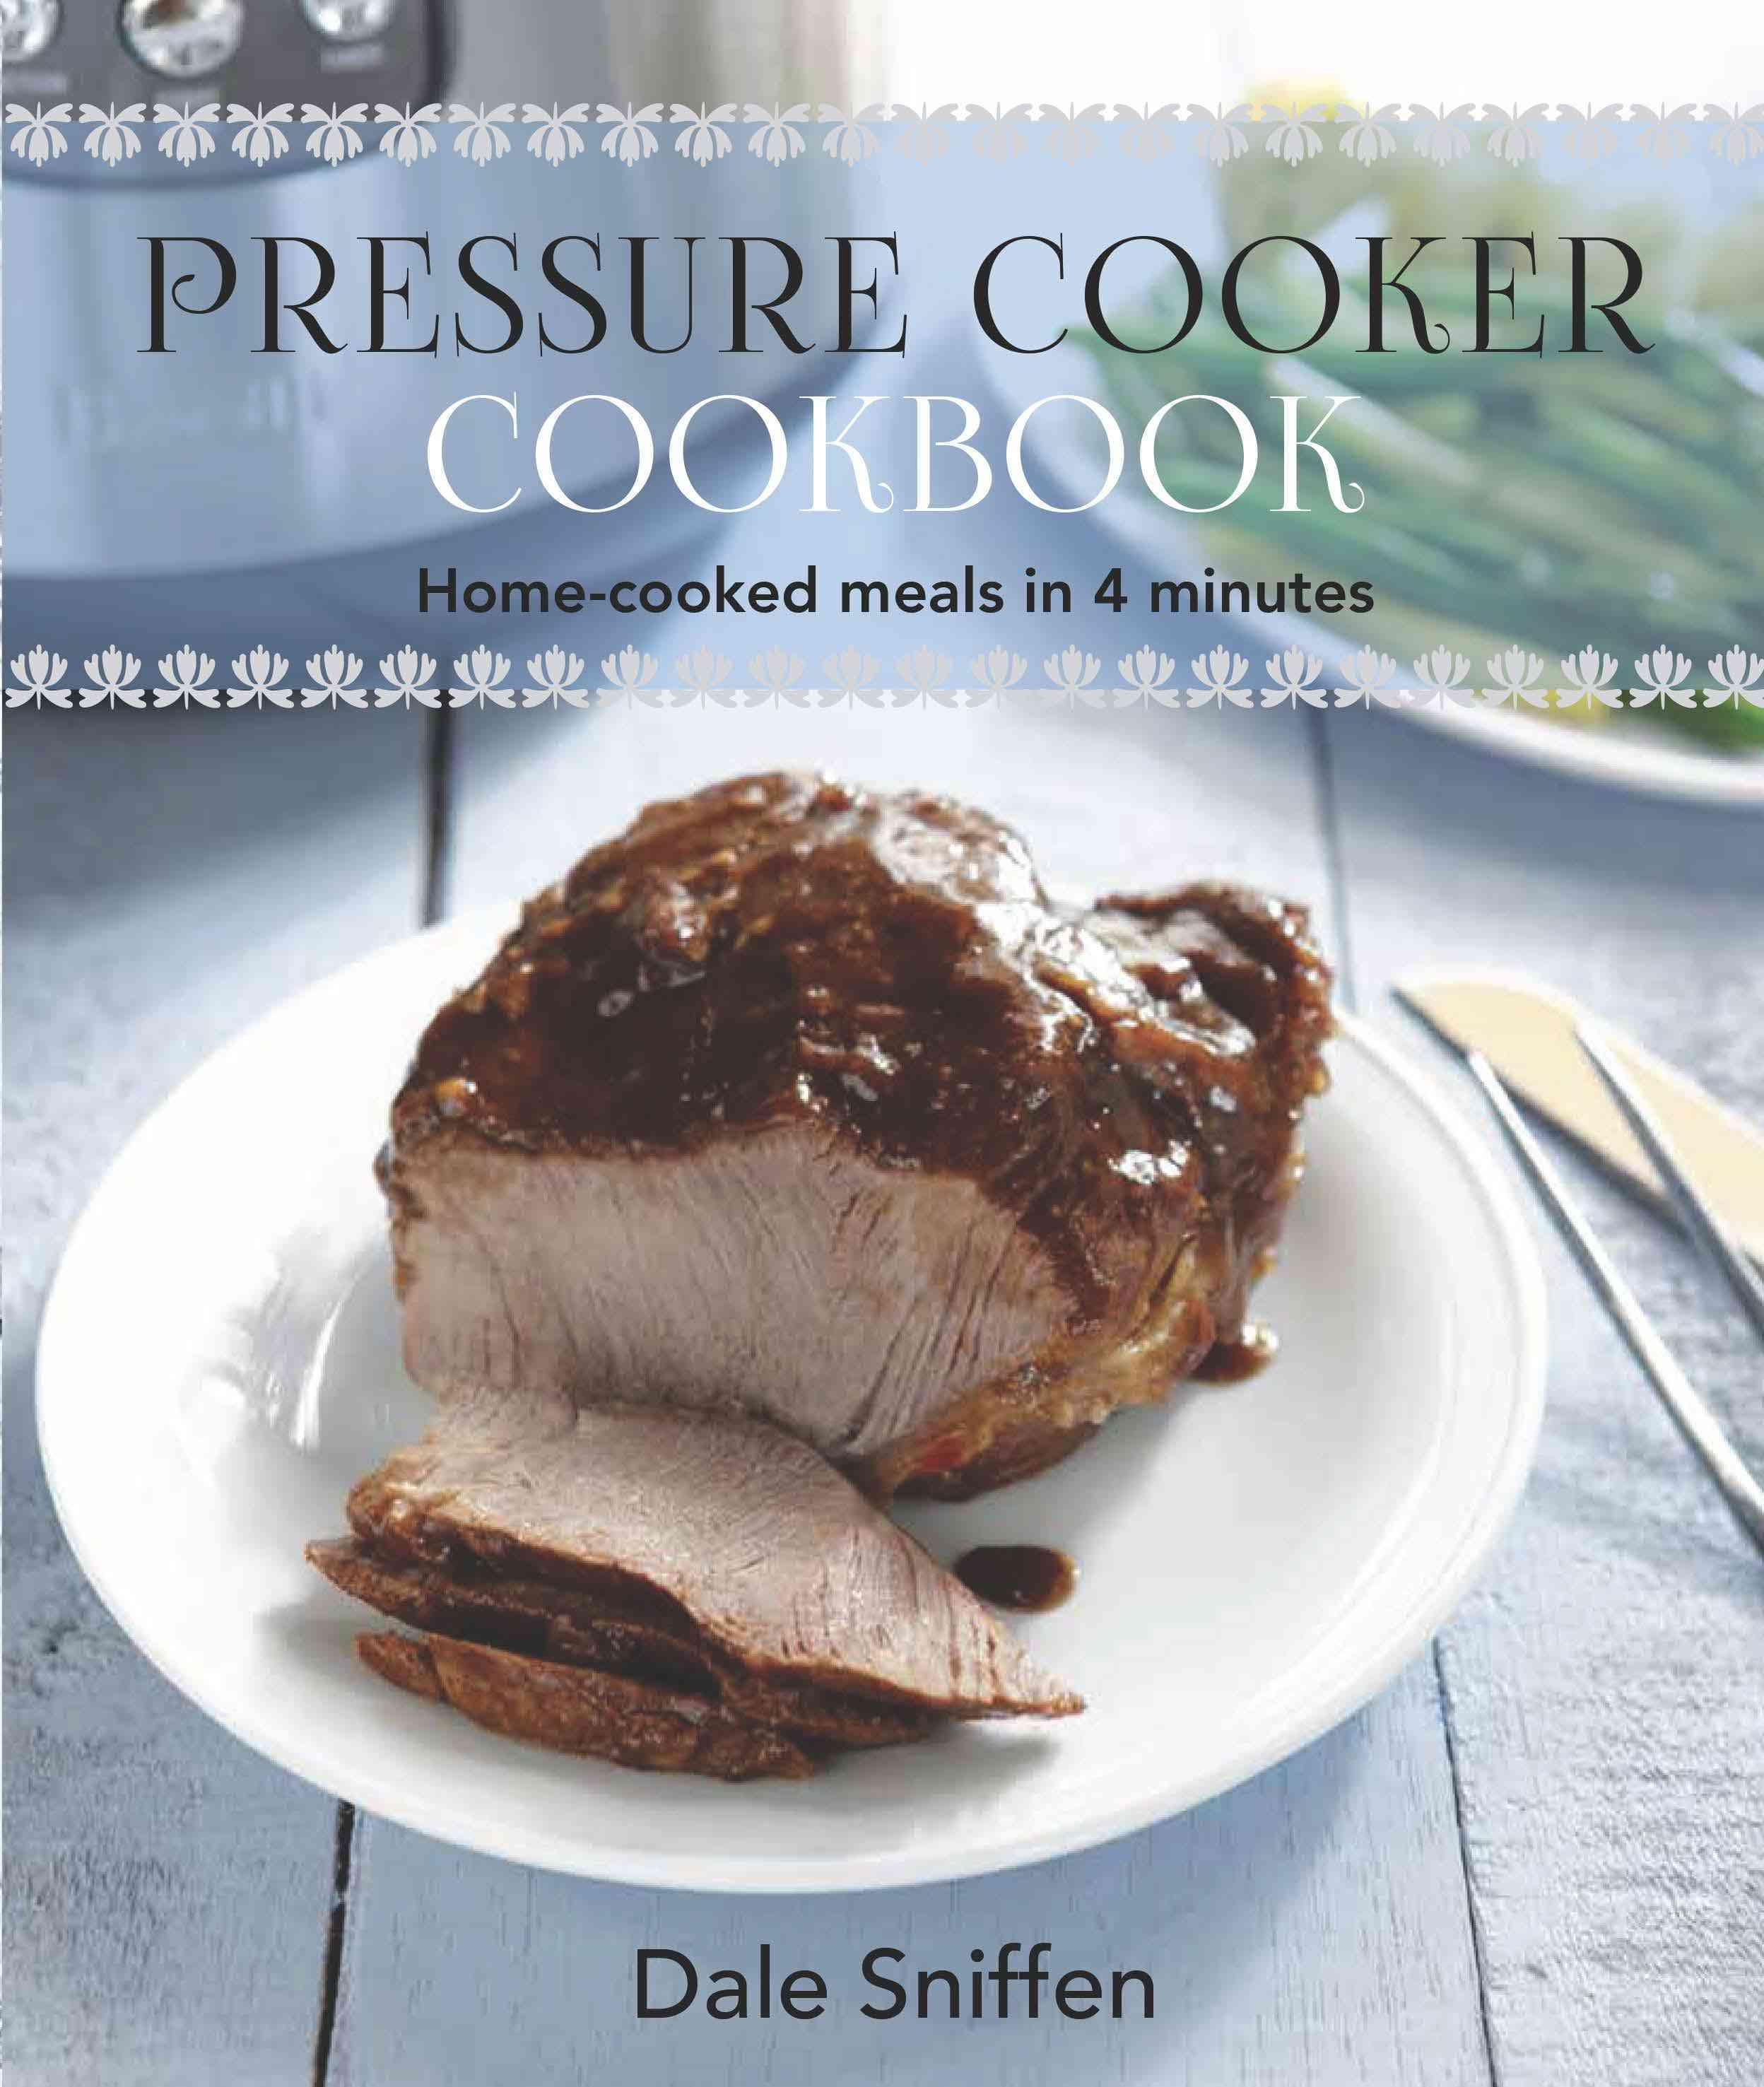 Pressure Cooker Cookbook: Home-Cooked Meals in 4 Minutes (Paperback)